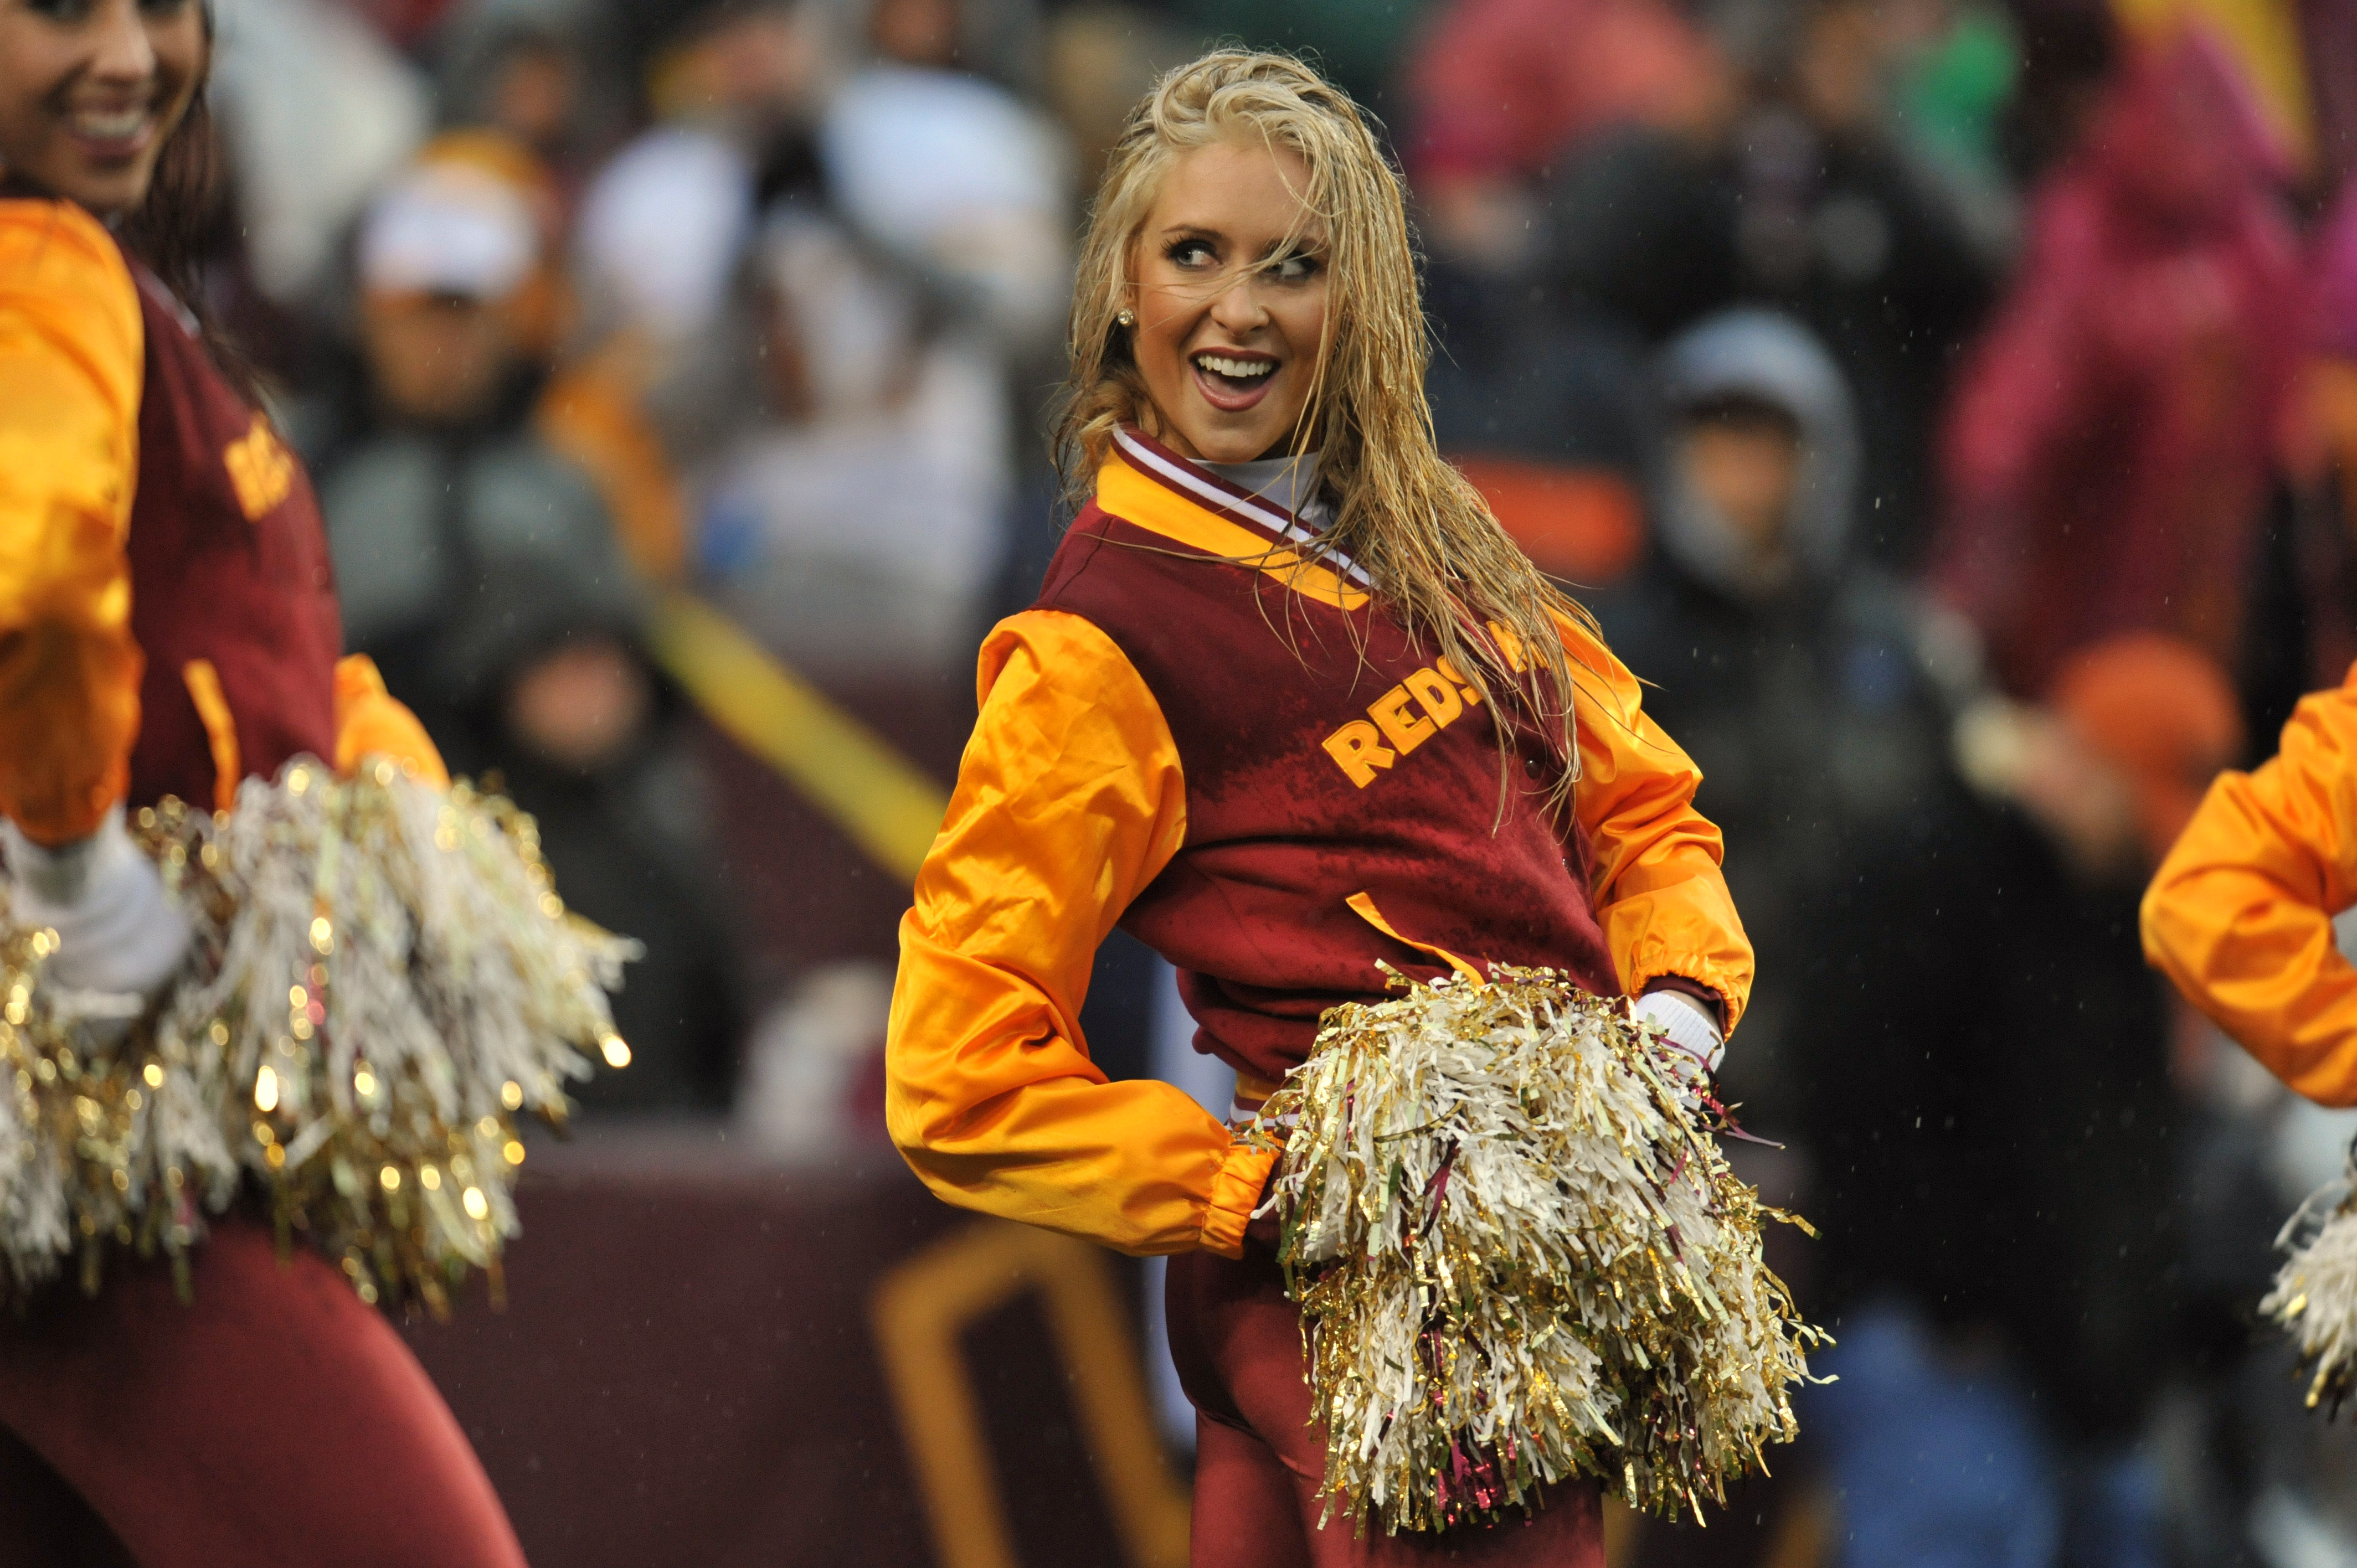 LANDOVER, MD - DECEMBER 12:  A cheerleader for the Washington Redskins performs a routine during a time out during the game against the Tampa Bay Buccaneers at FedExField on December 12, 2010 in Landover, Maryland. The Buccaneers defeated the Redskins 17-